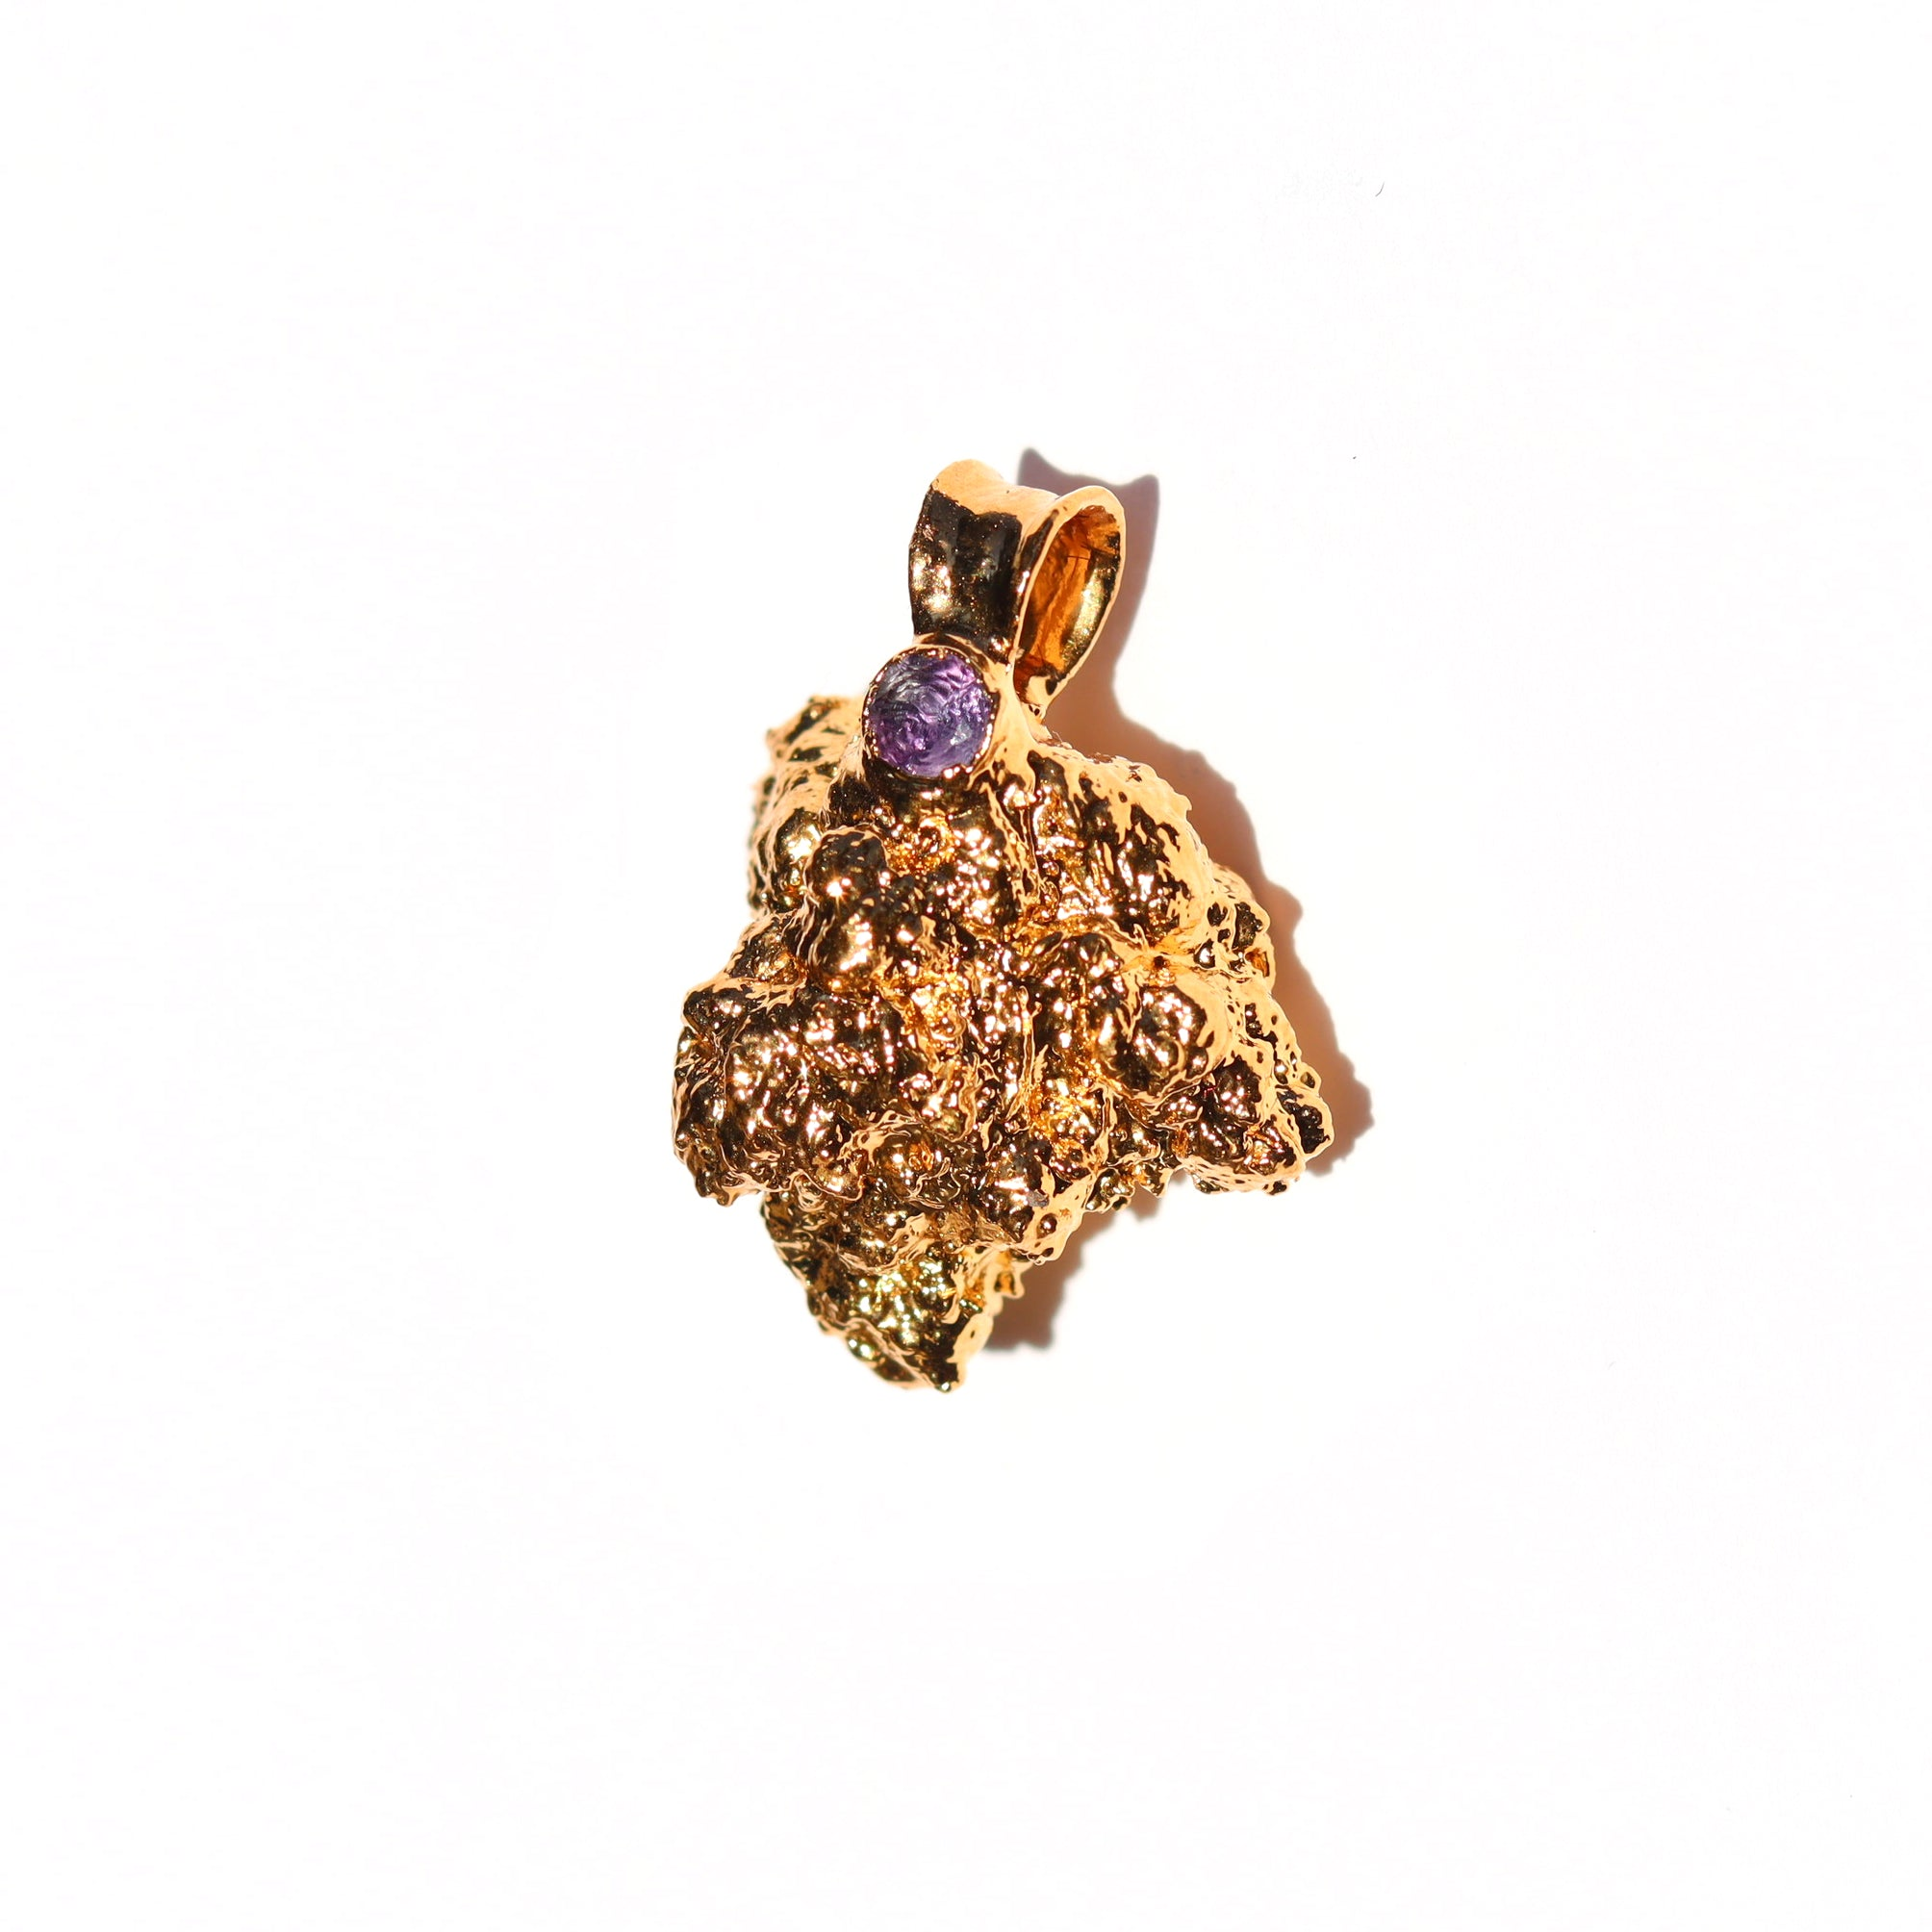 24k OG Kush Nug with Amethyst